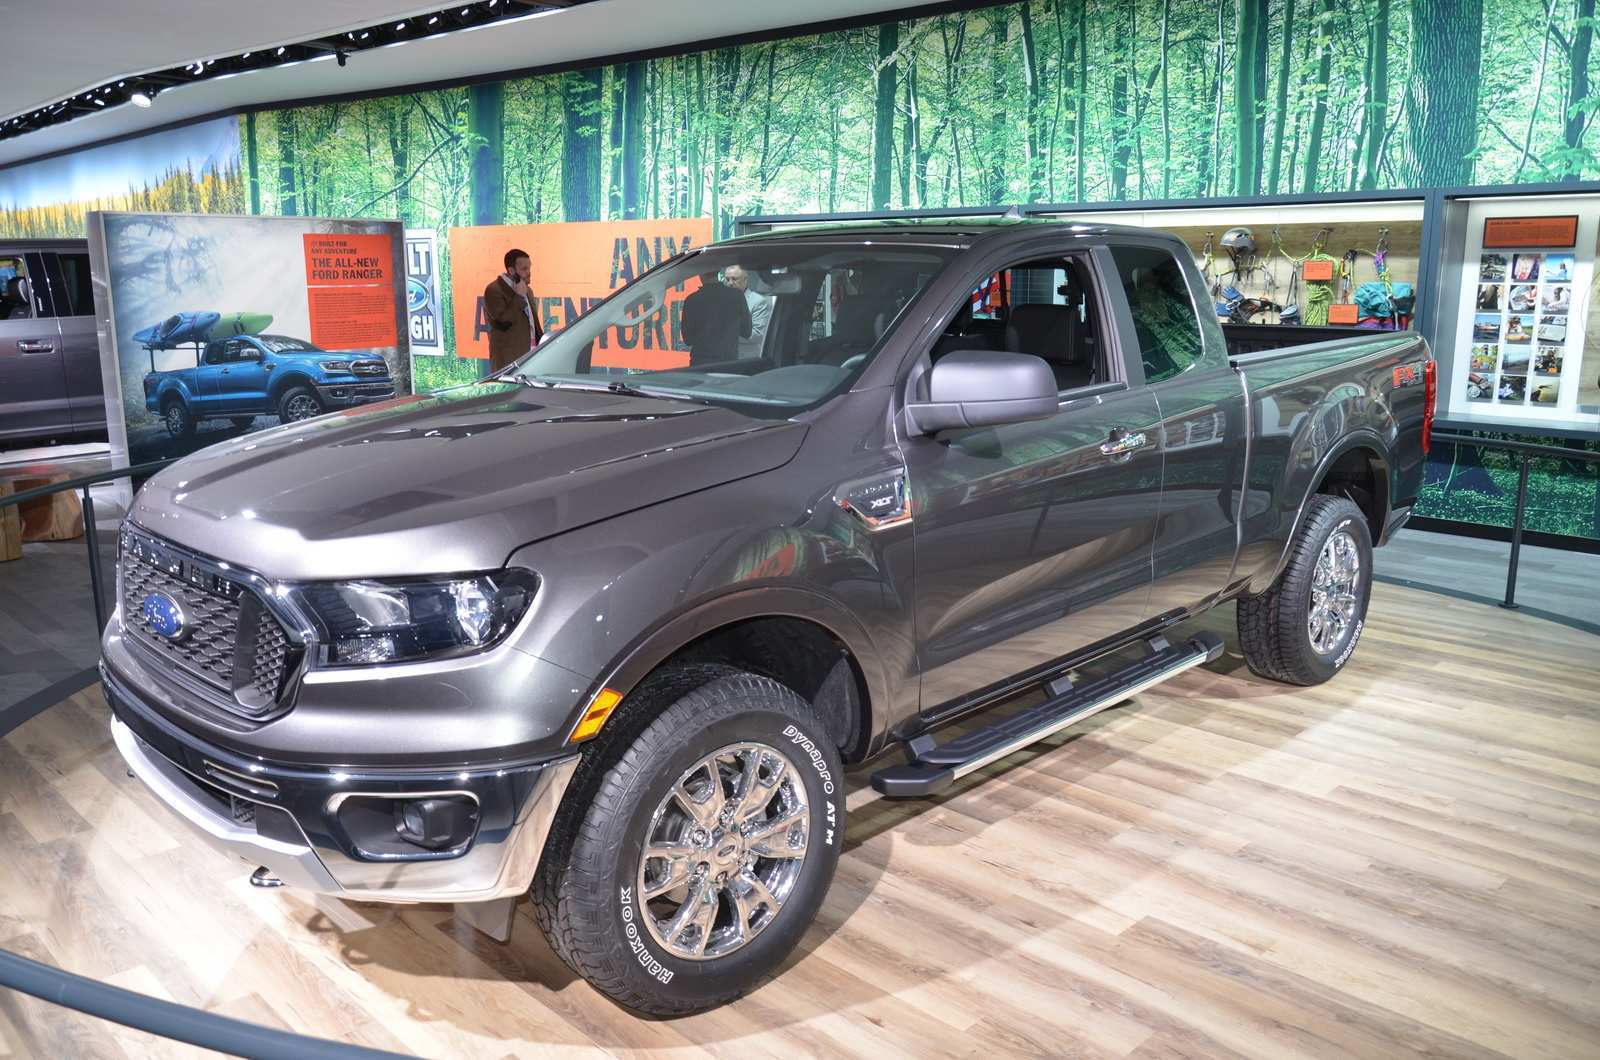 47 All New 2019 Ford Ranger 2 Door Review with 2019 Ford Ranger 2 Door